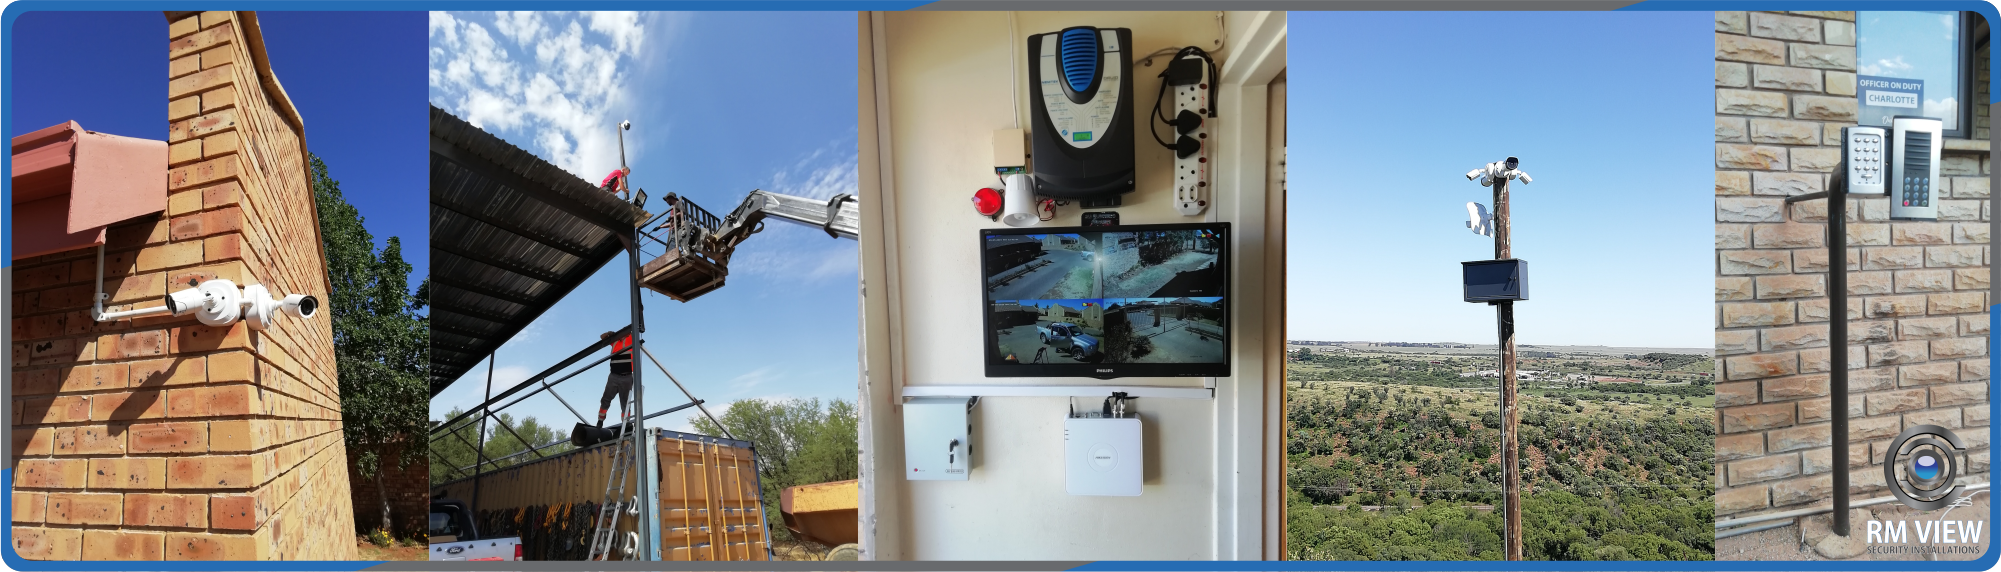 Security and CCTV Installation company